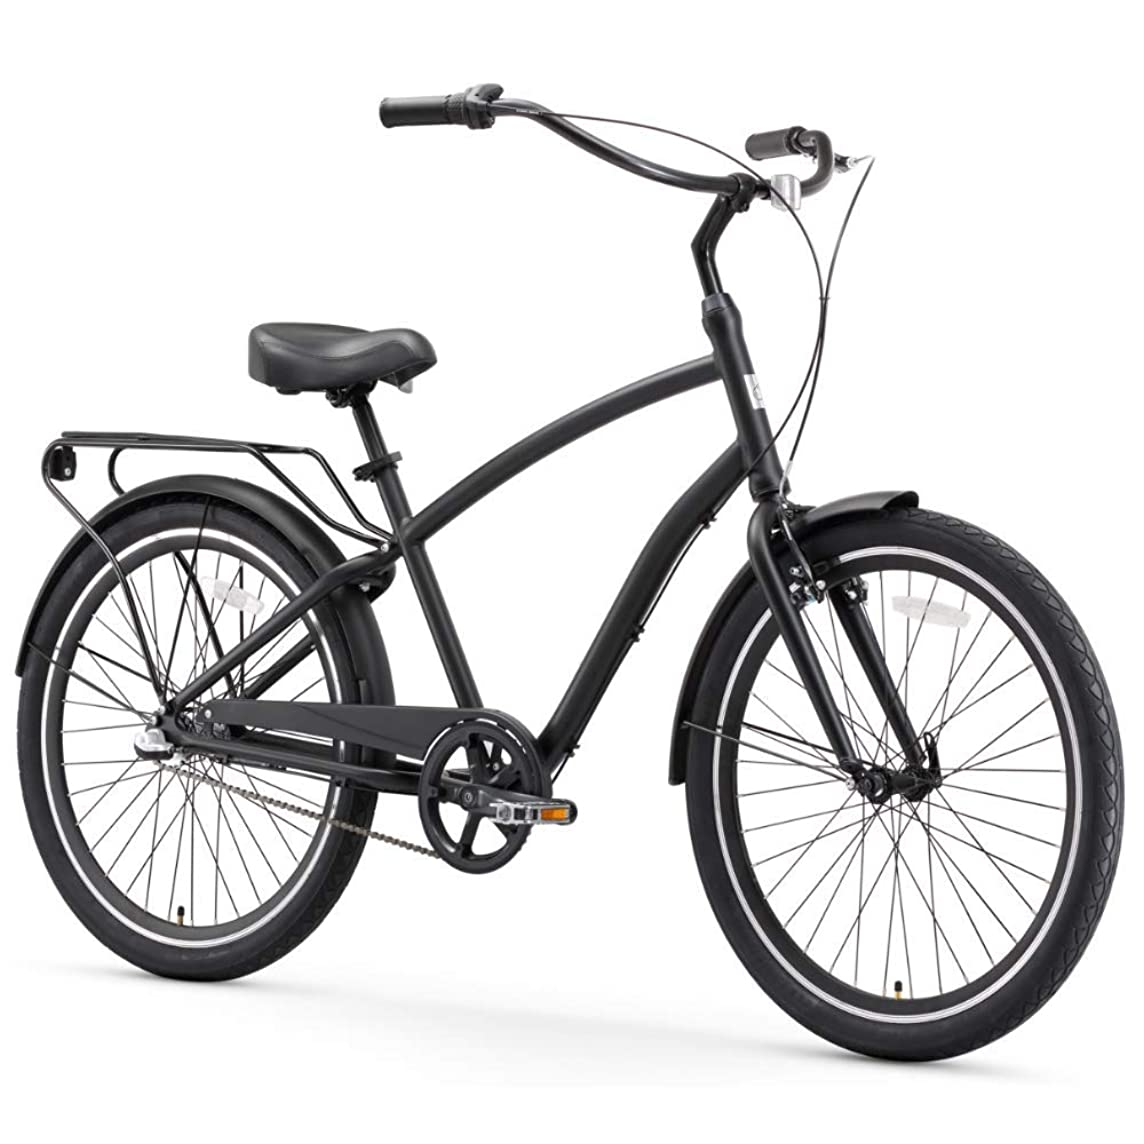 sixthreezero EVRYjourney Men's Hybrid Cruiser Bicycle, 26